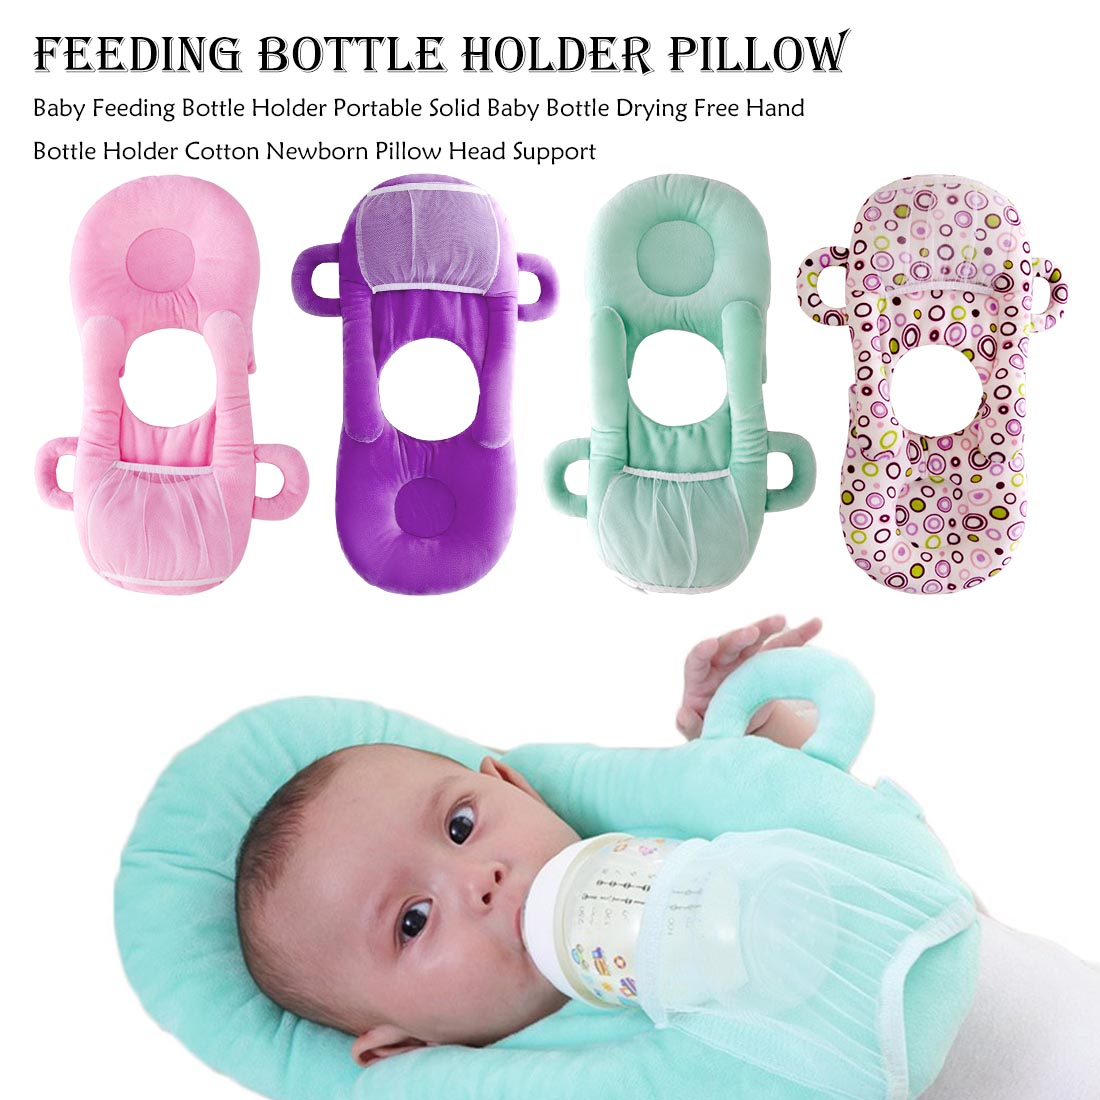 Hot Infant Learning Nursing Pillow Cushion Free Hand Bottle Holder Cotton Baby Milk Bottle Feeding Cup Baby Bottle Rack